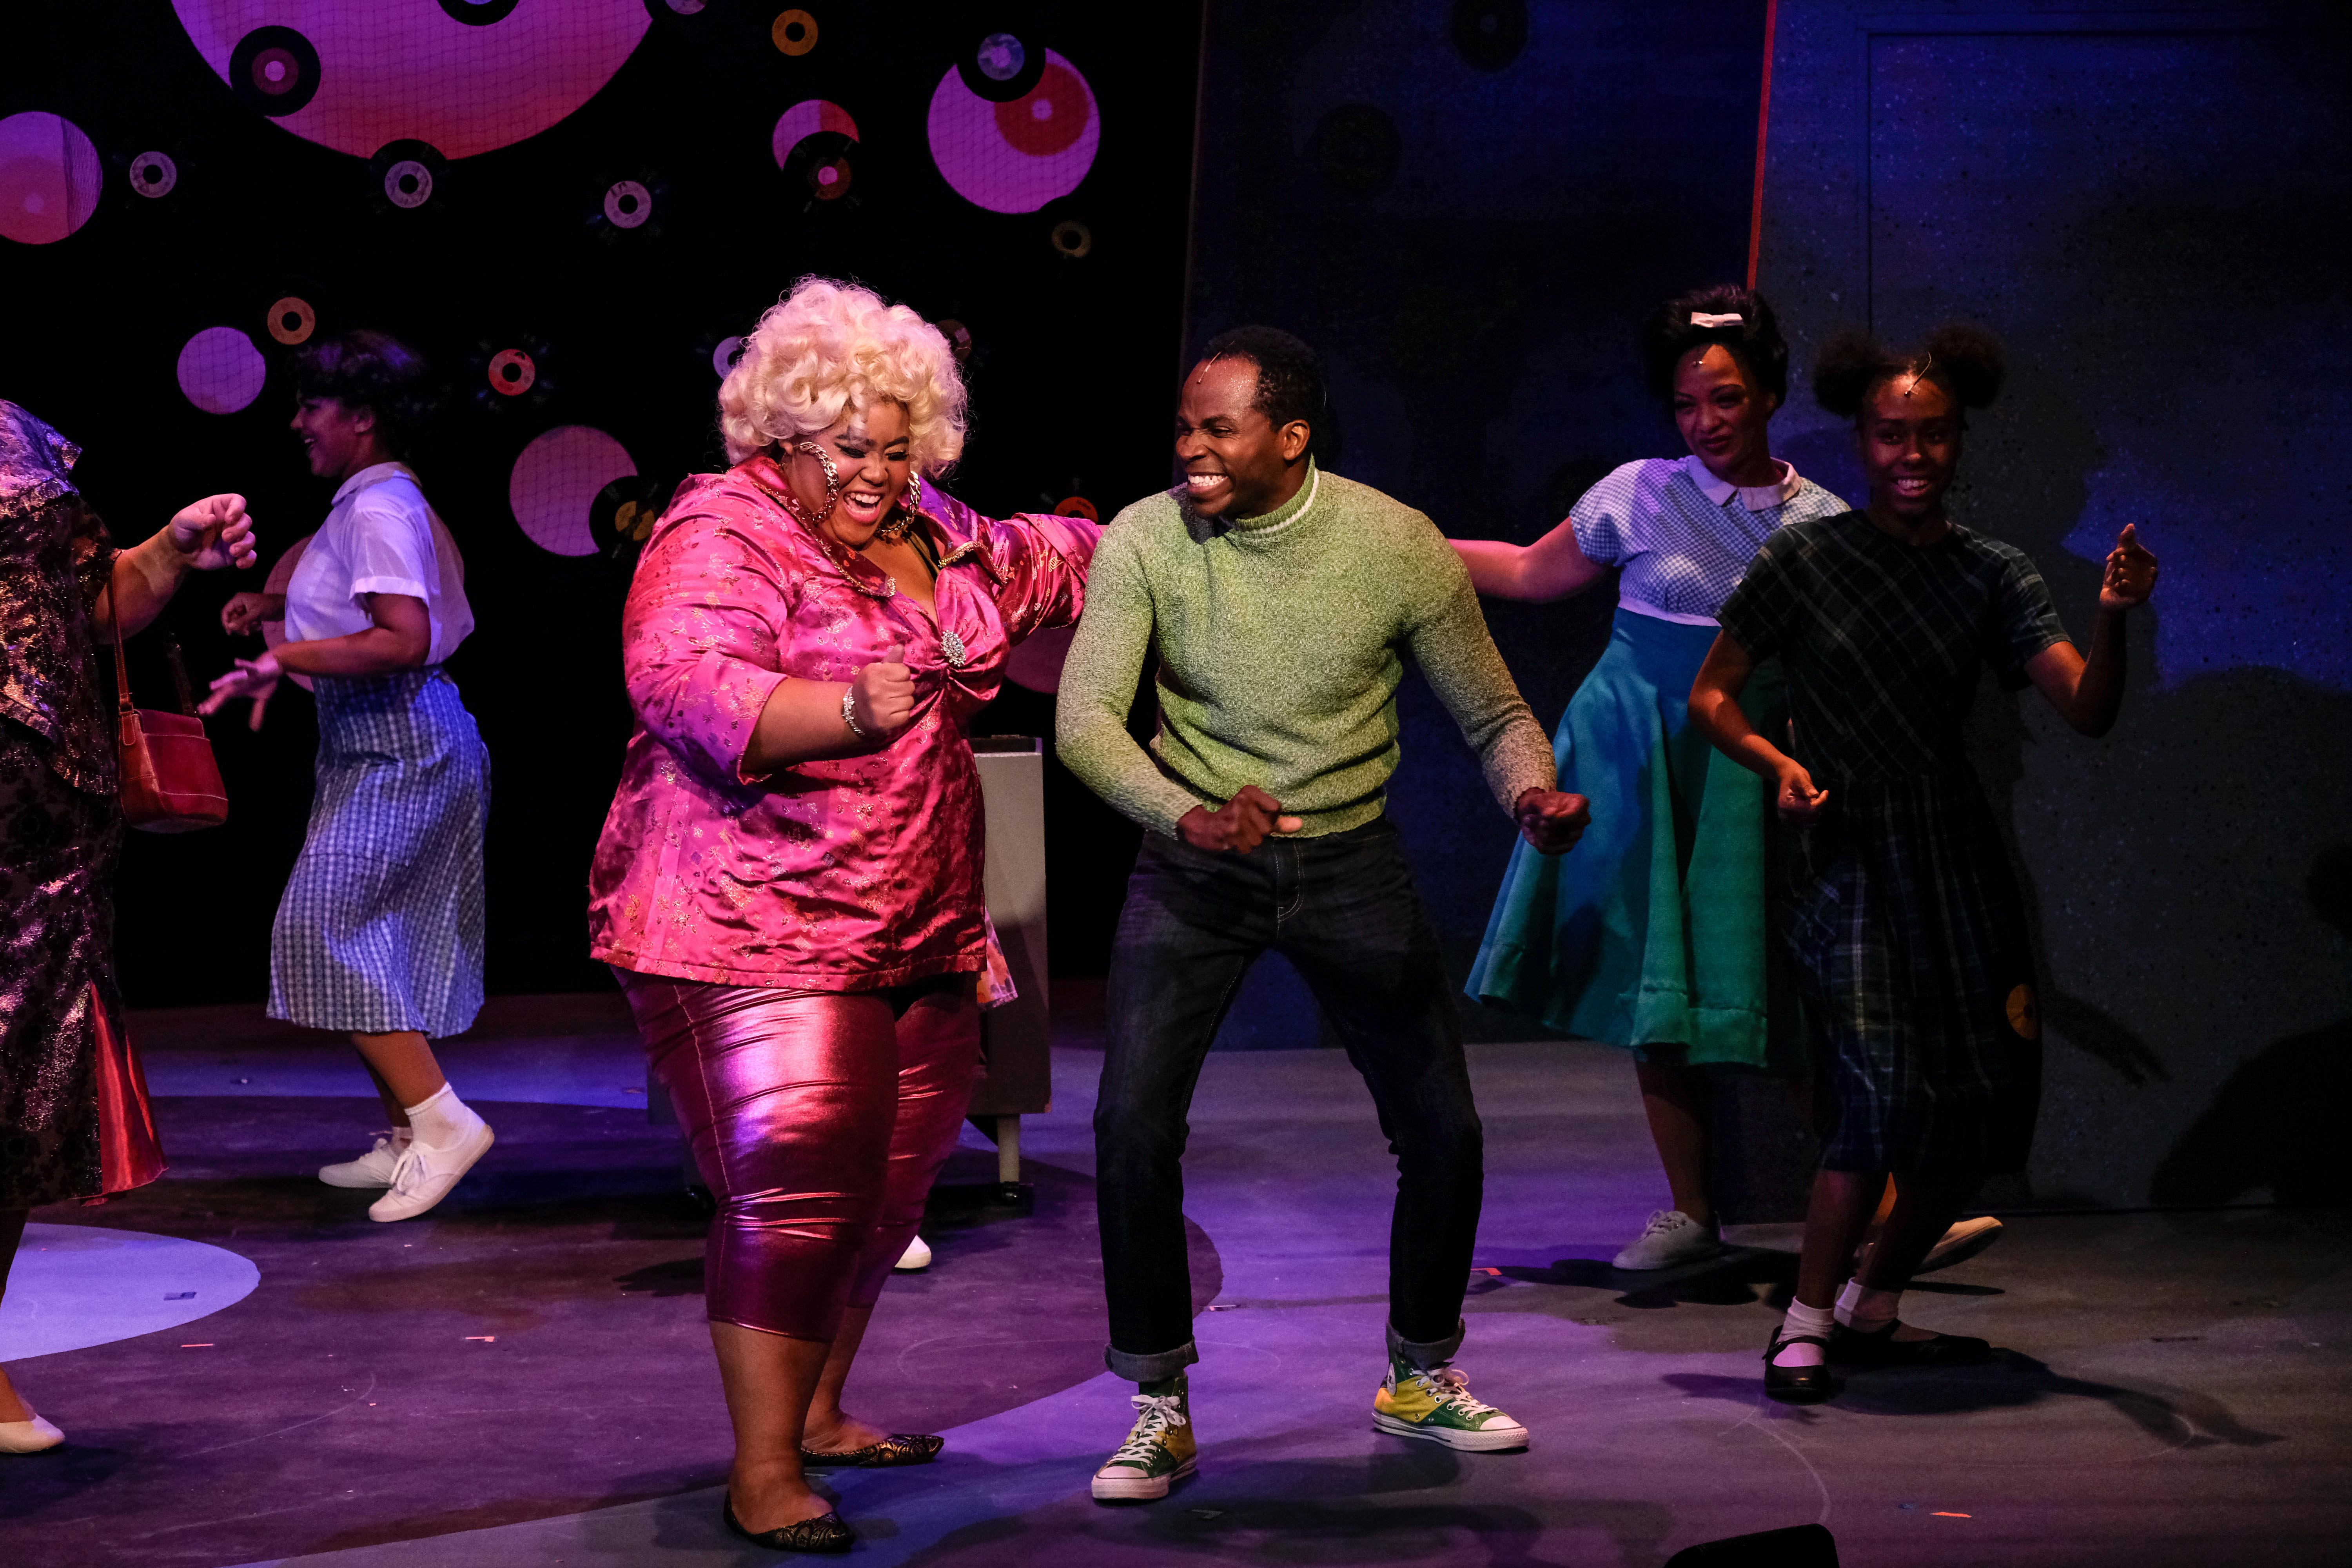 Eboni Muse as Motormouth Maybelle & Kenneth Mosely as Seaweed